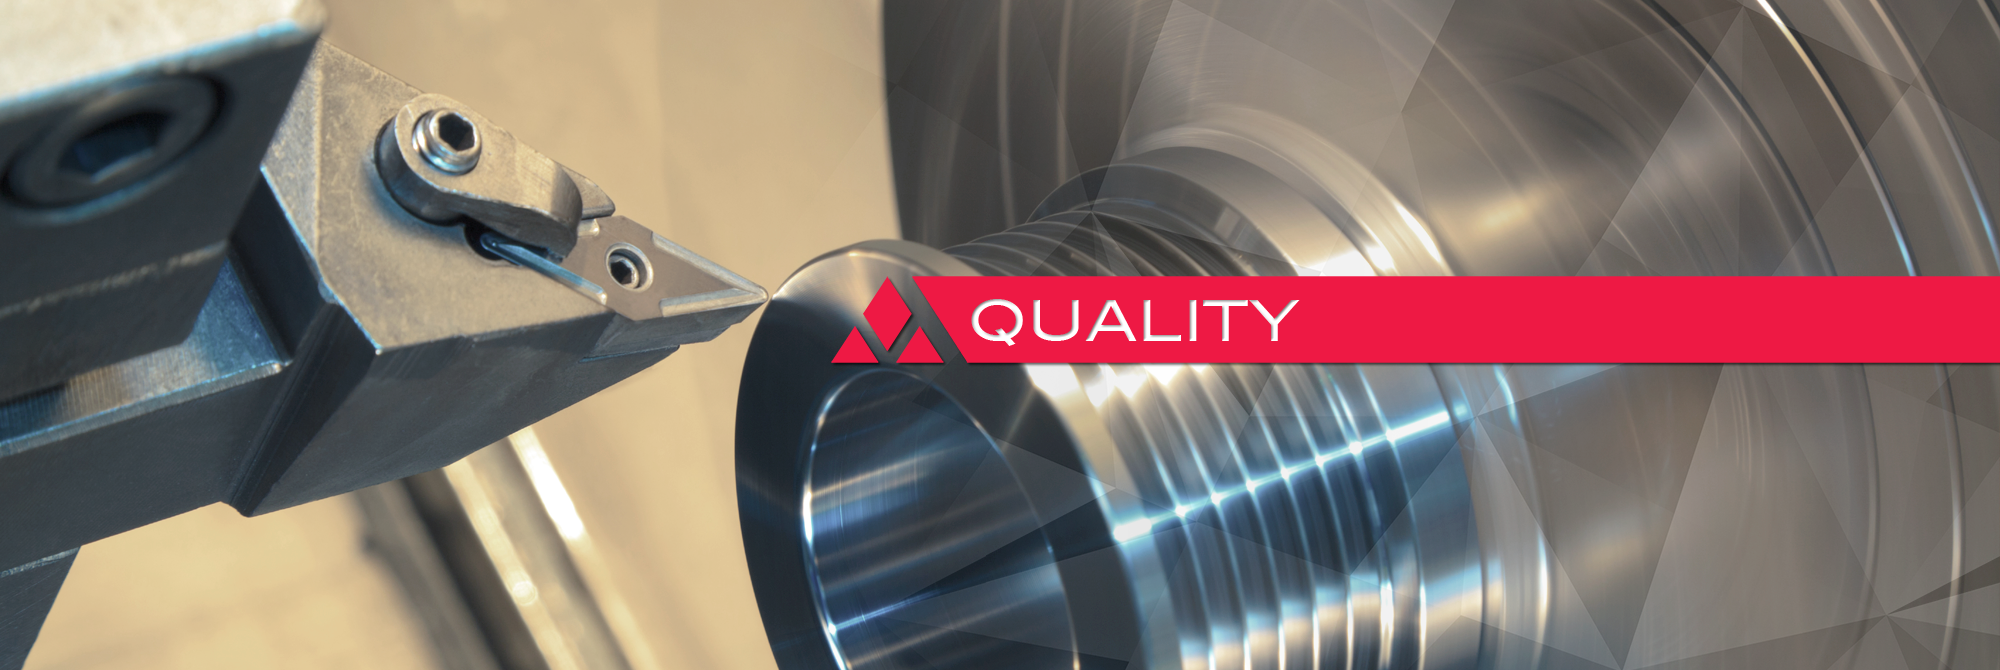 Quality in every machining project